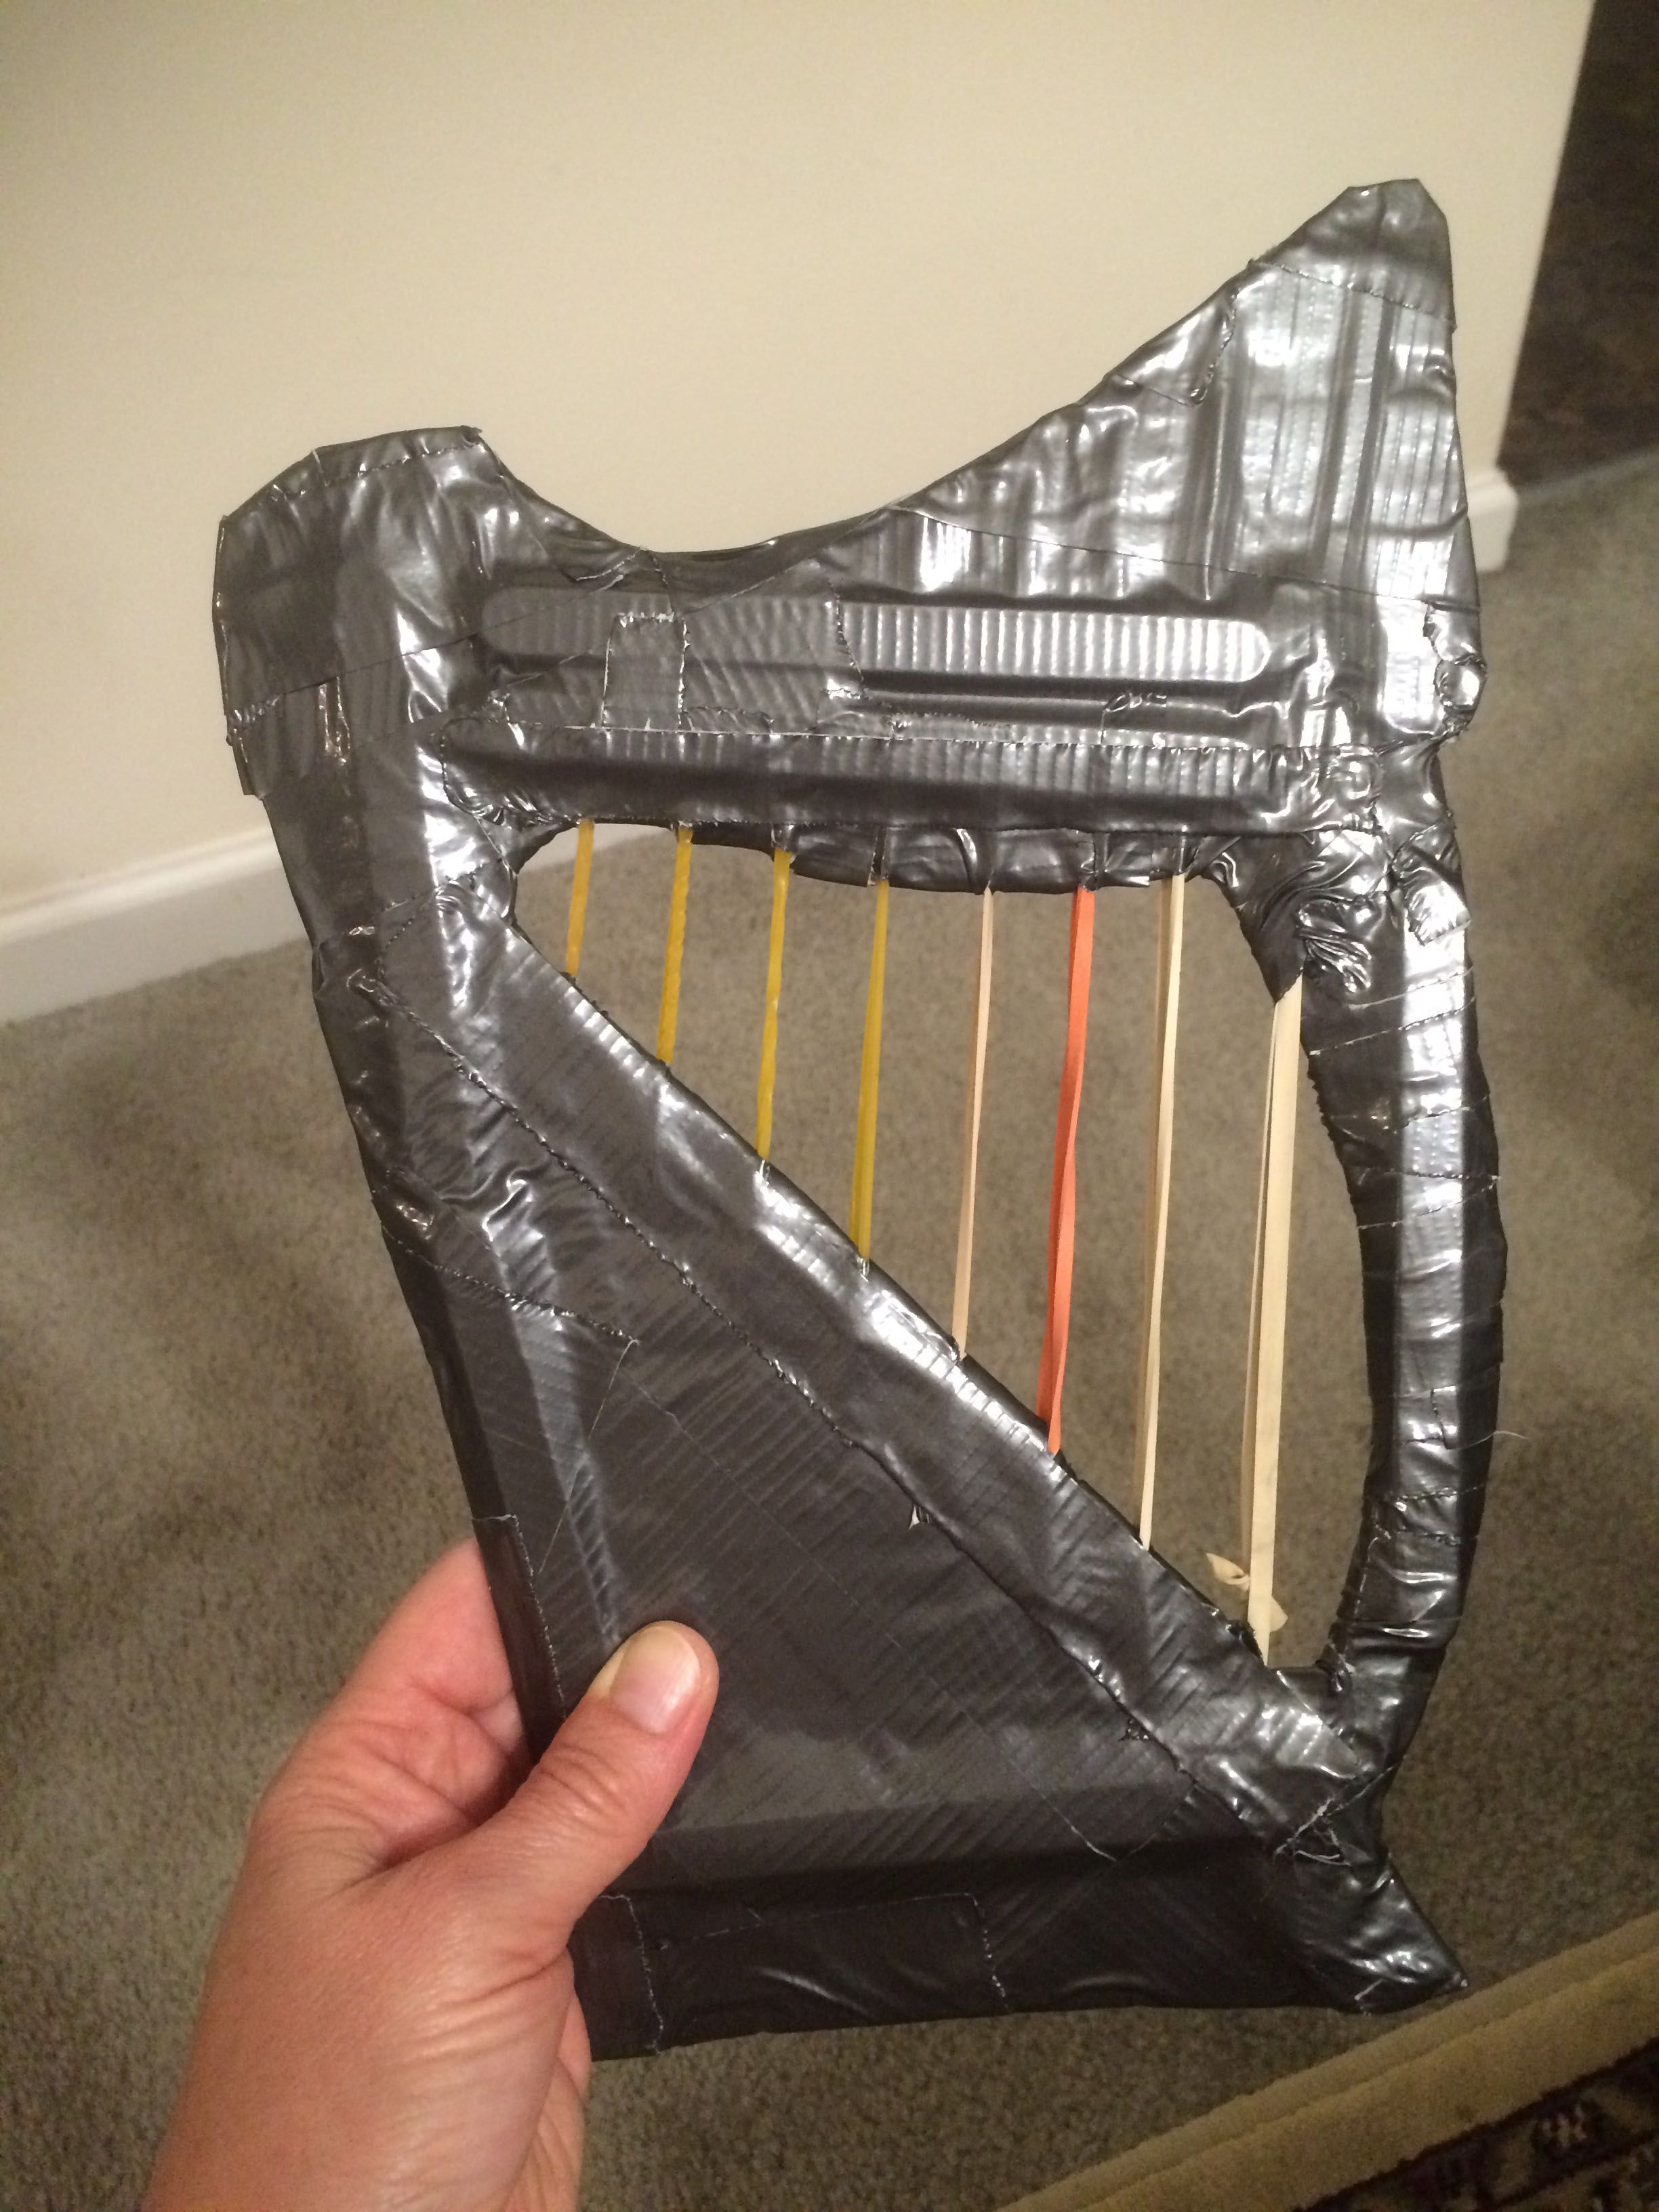 Working Toddler Preschool Sized Harp Made From Cardboard Popsicle Sticks For Stability Rubber Bands And Duct Tape Harp Duct Tape Popsicle Sticks